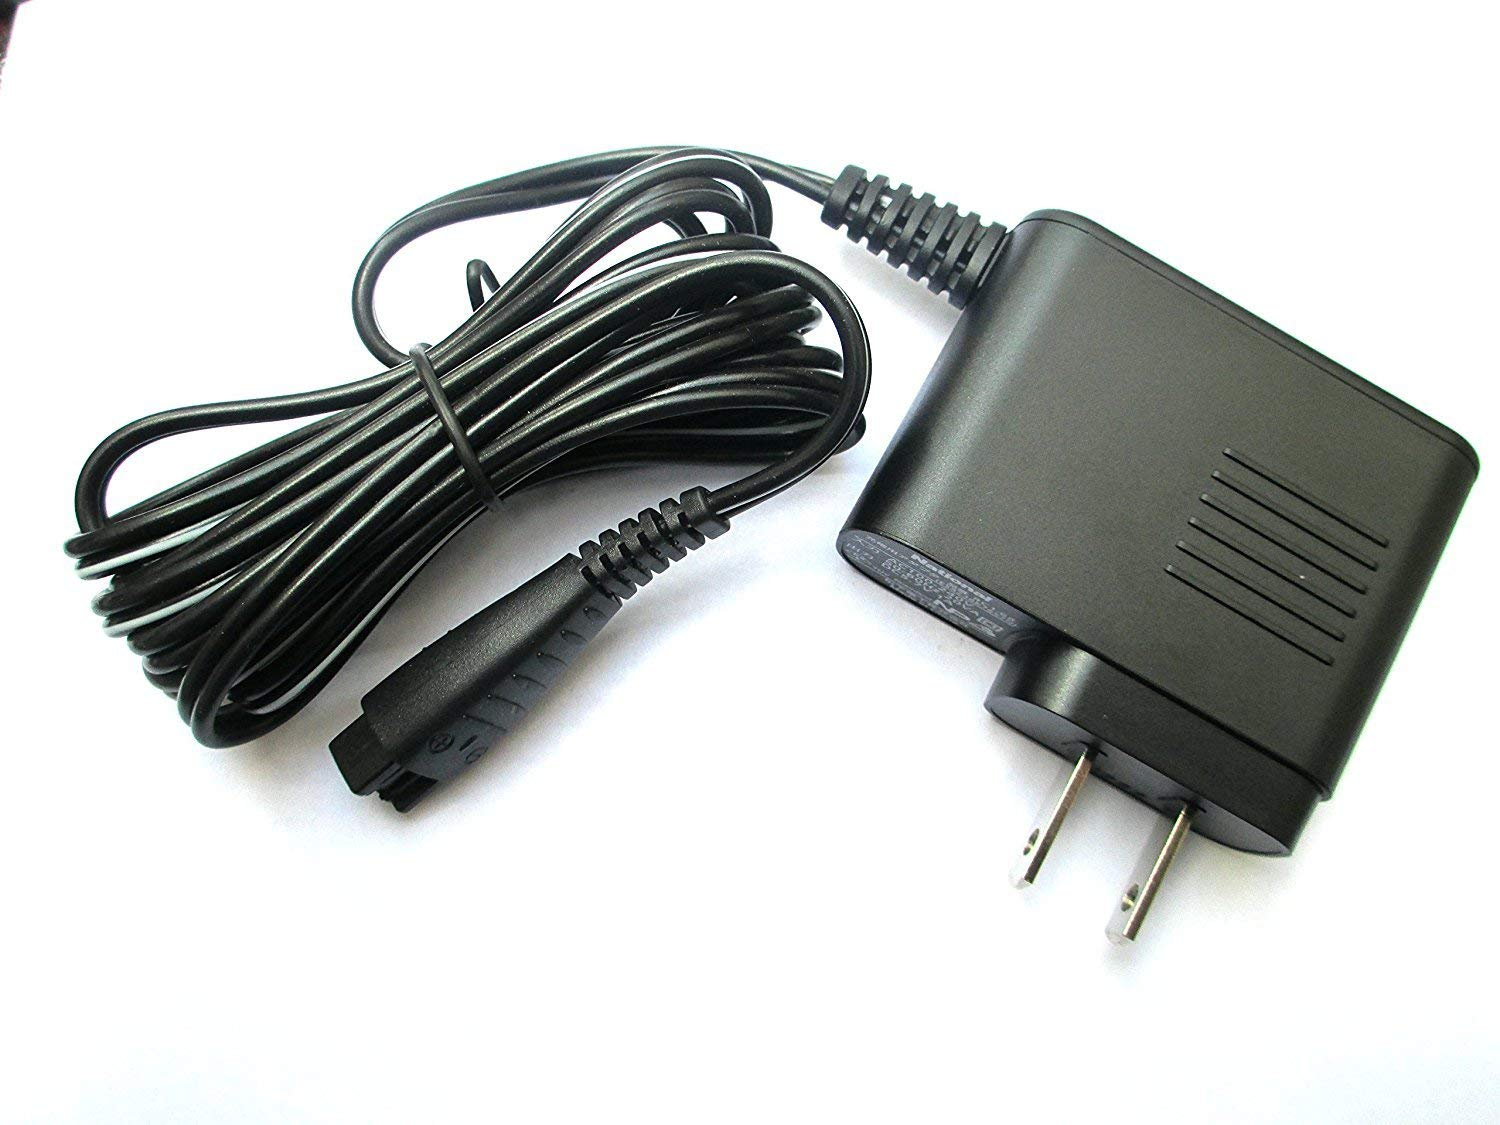 Replacement Charging Adapter Cord Price reduction RC1-74 Panasonic Ranking TOP9 M For Shavers